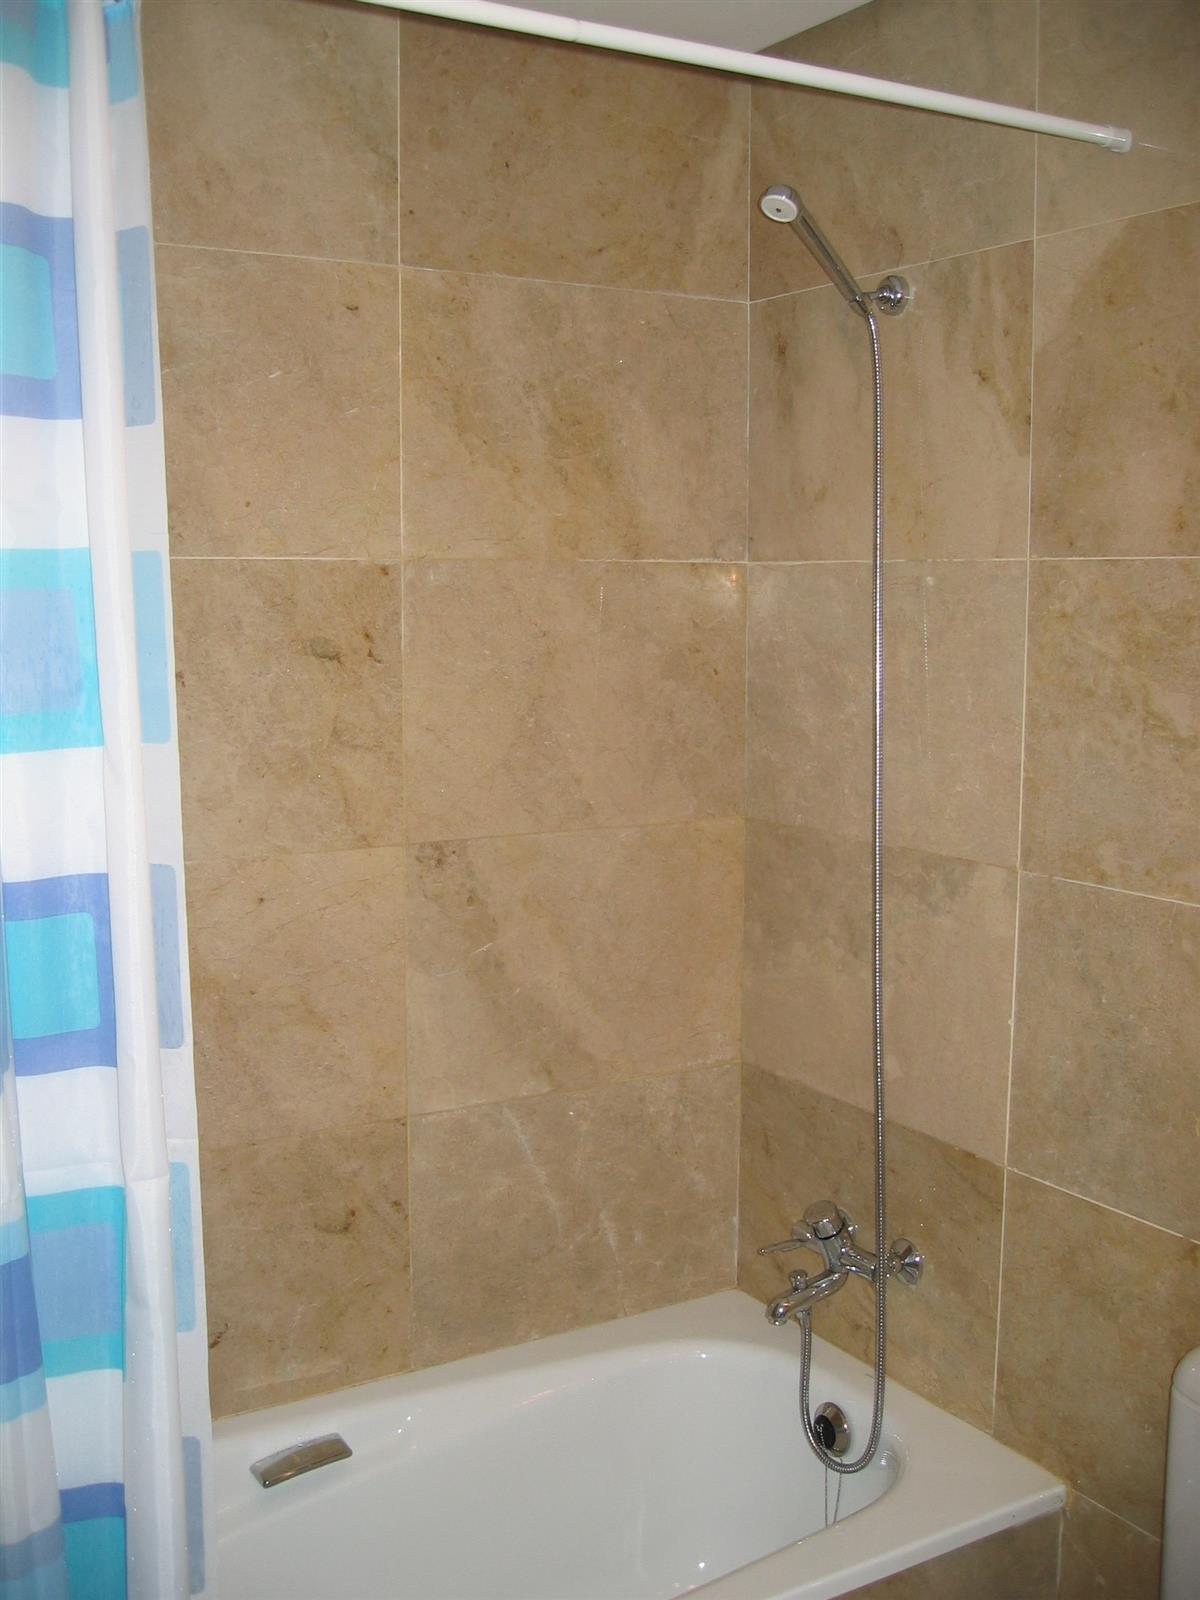 Bath/Shower in the bathrooms